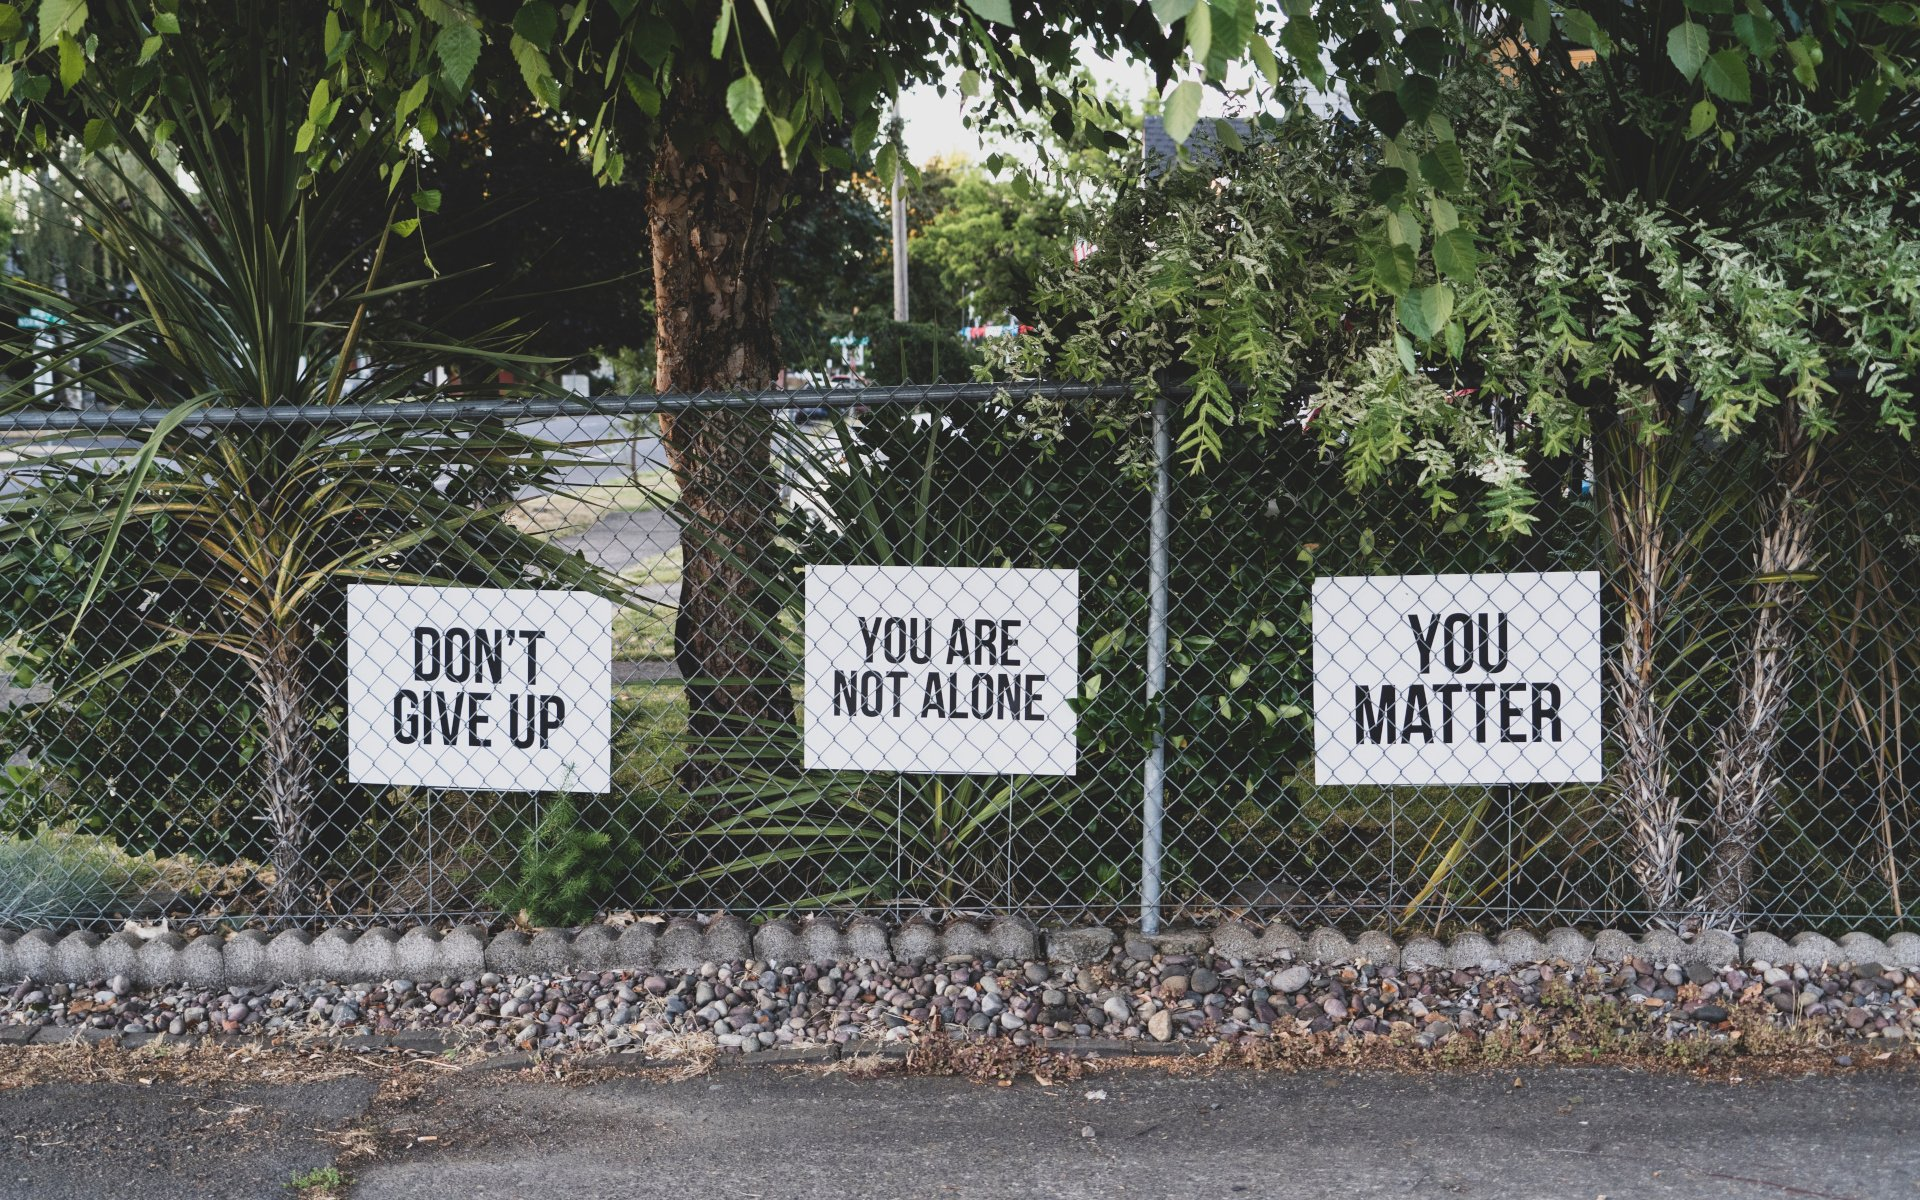 Metal Garden Fence With Signs Which Have Positive Messages On Them